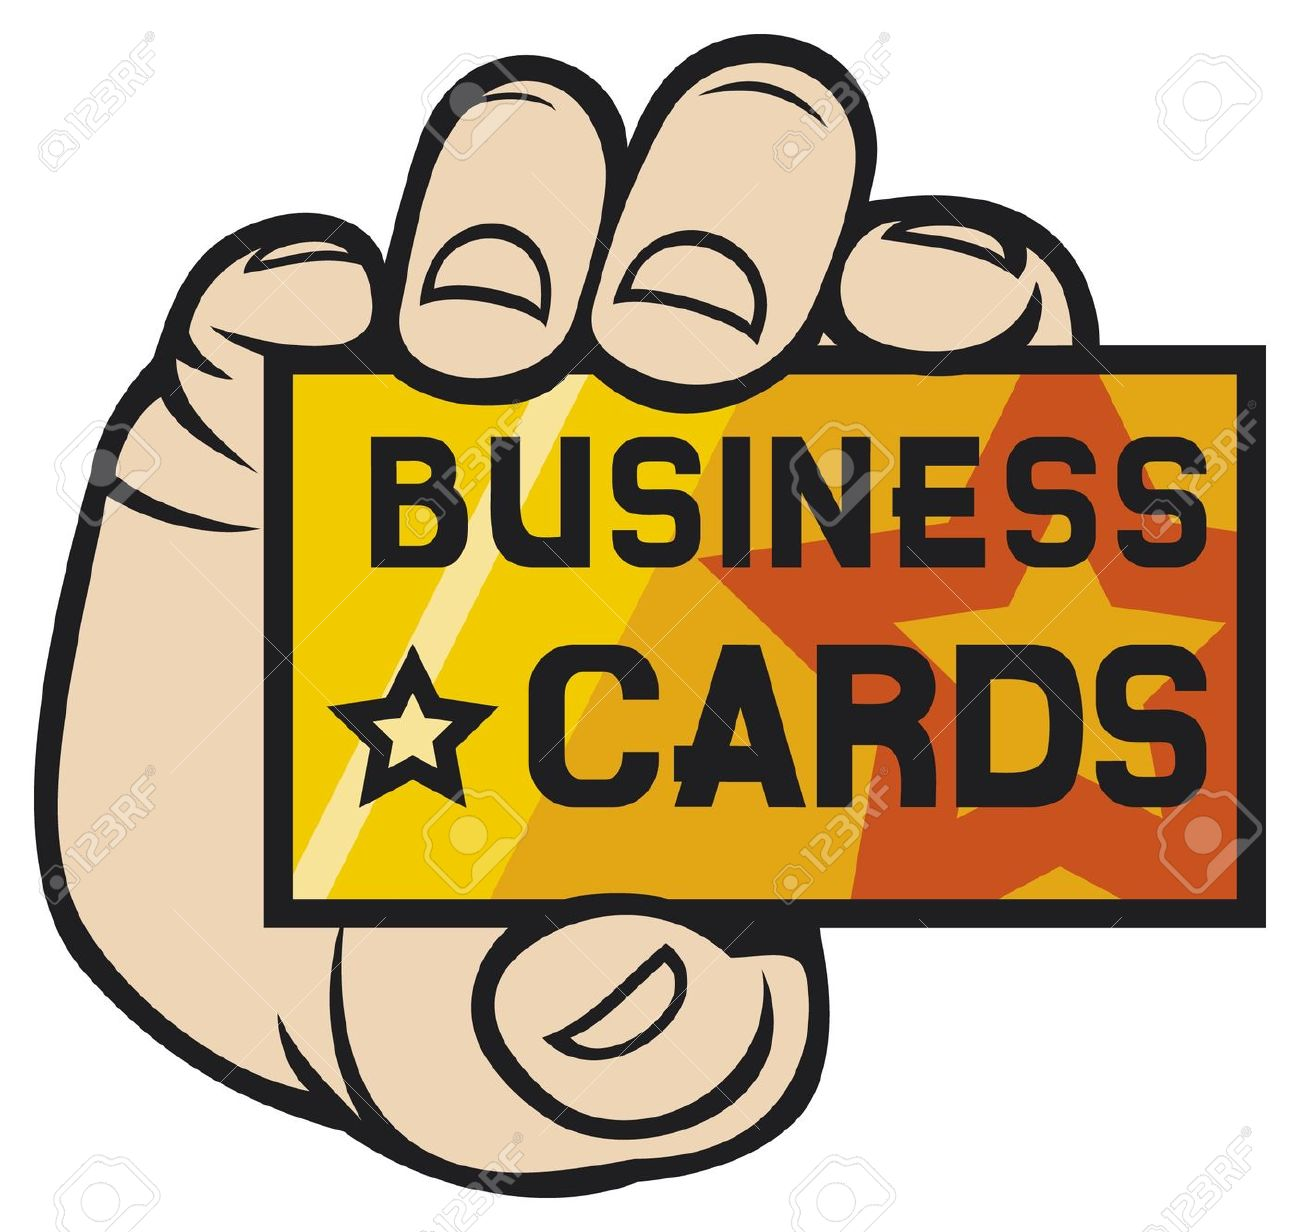 Hand Holding Business Card .-hand holding business card .-11